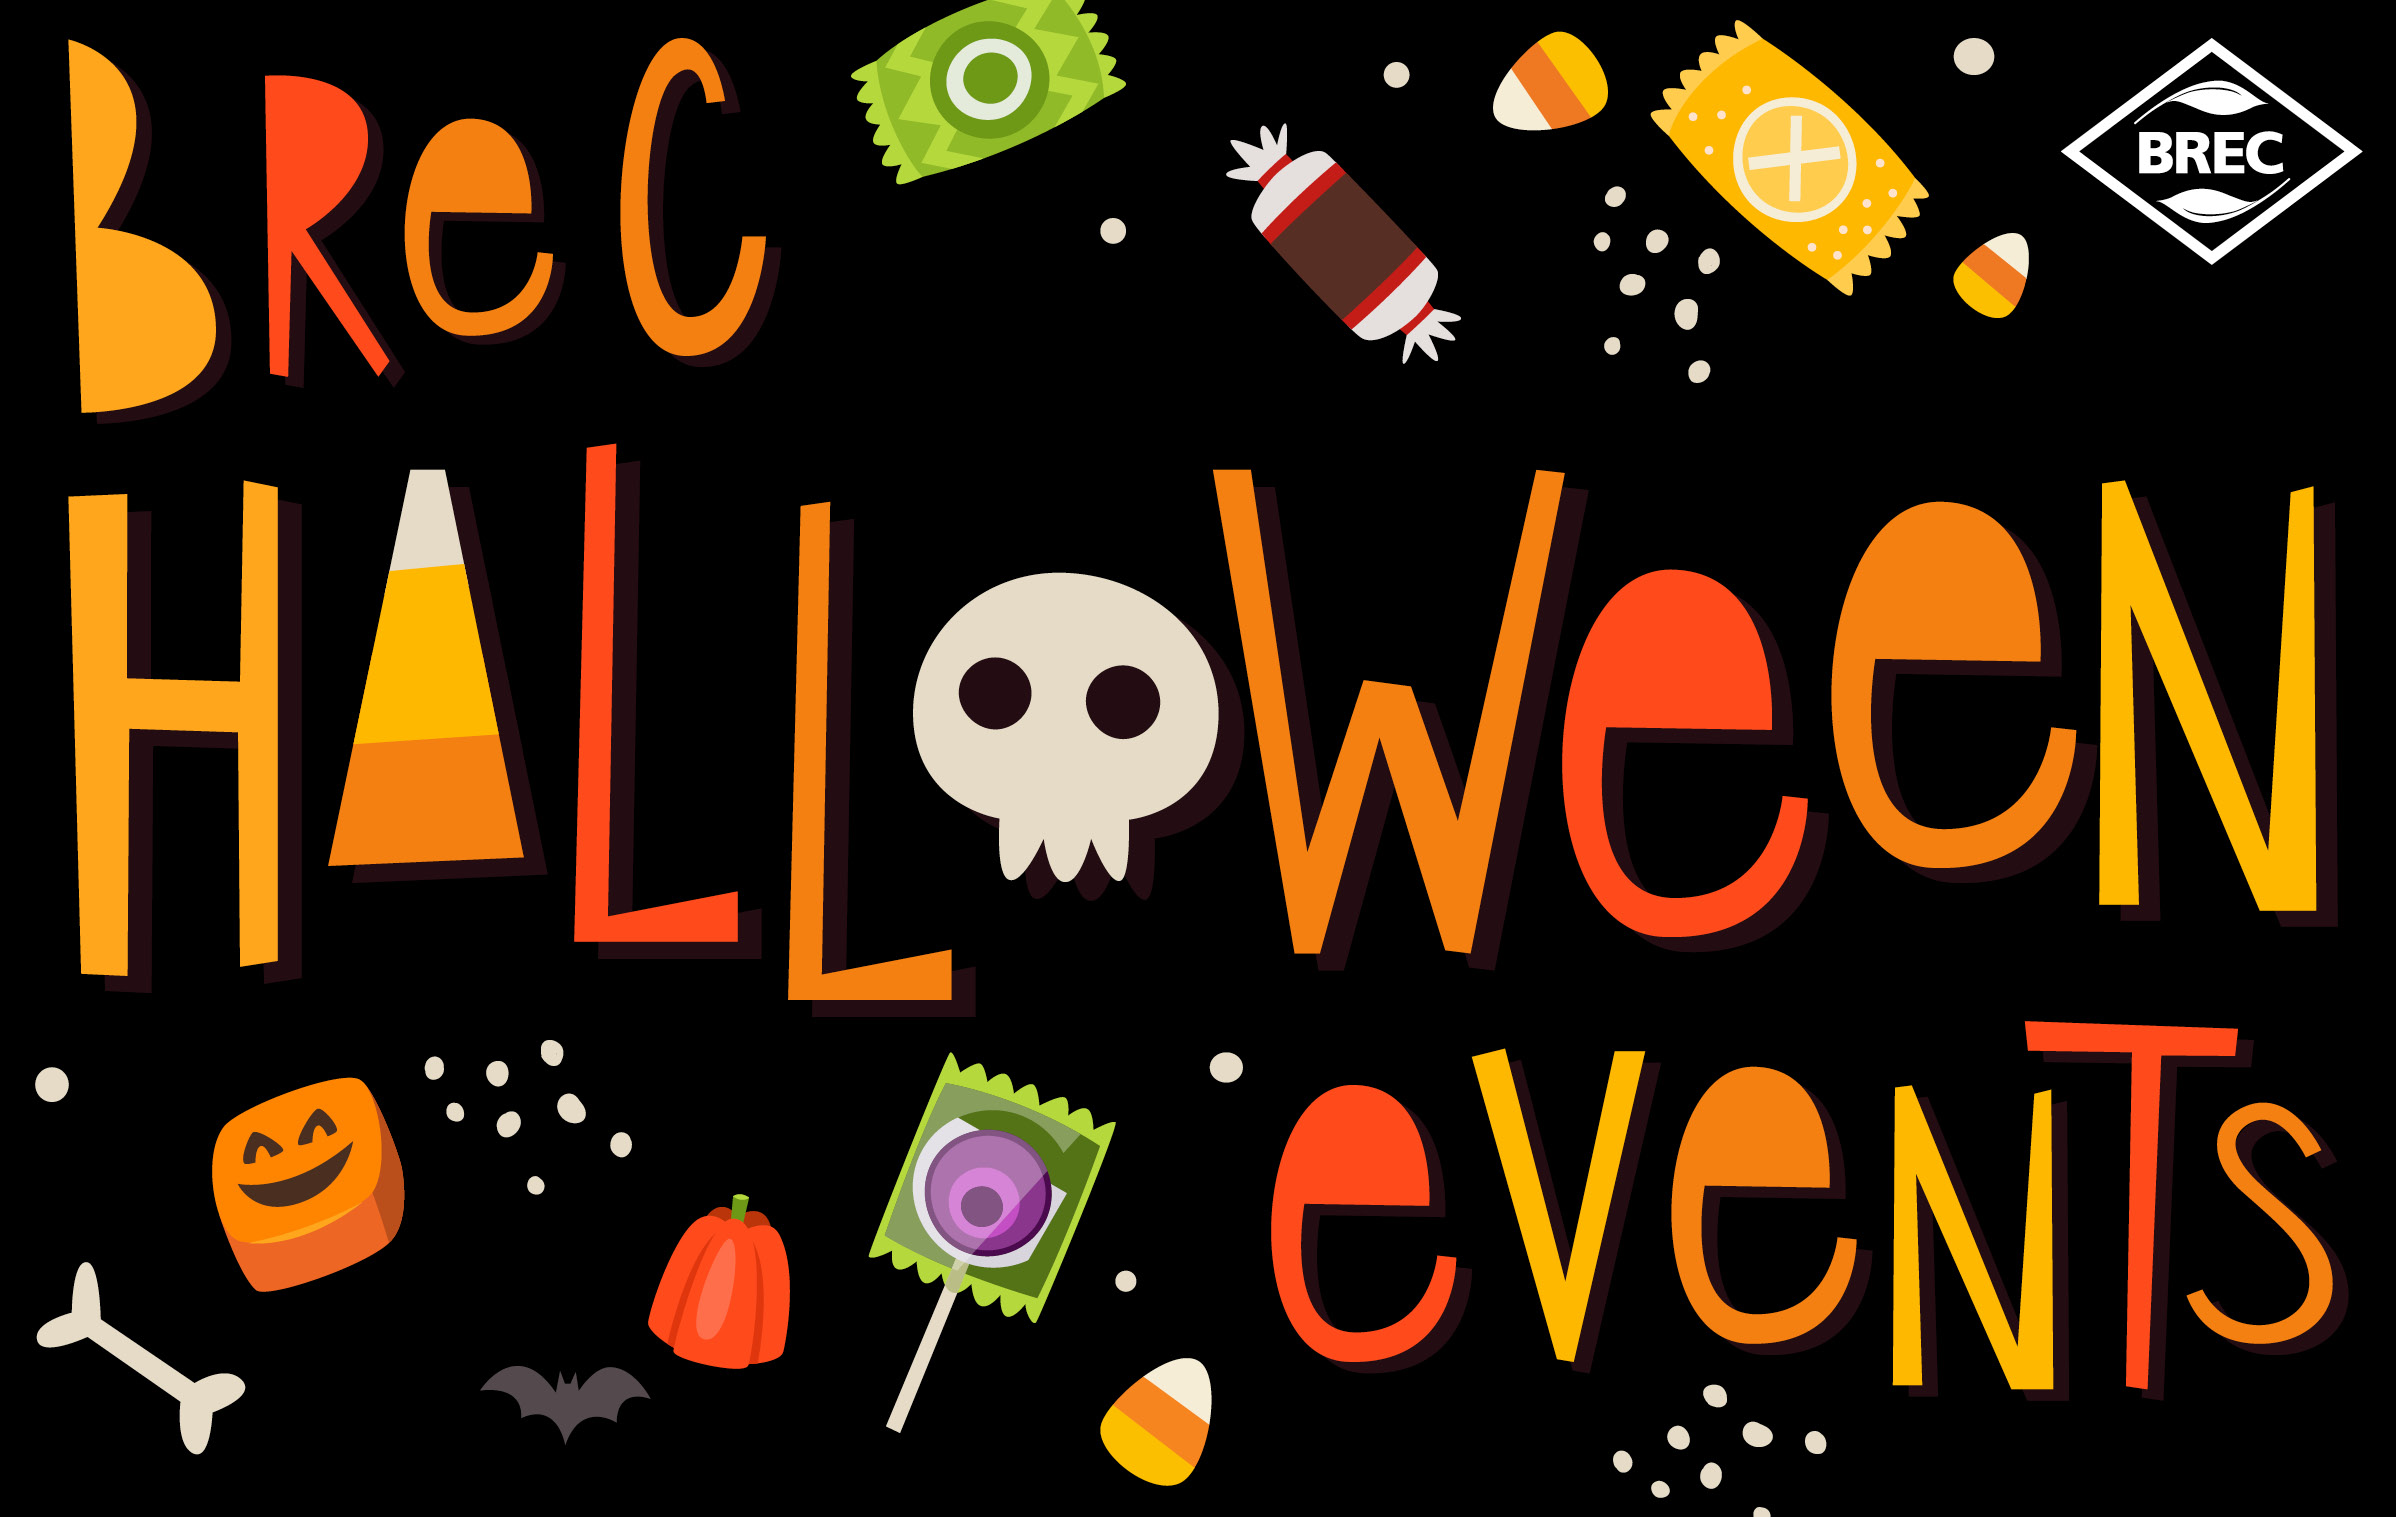 brec hosts family-friendly halloween events | brec - parks